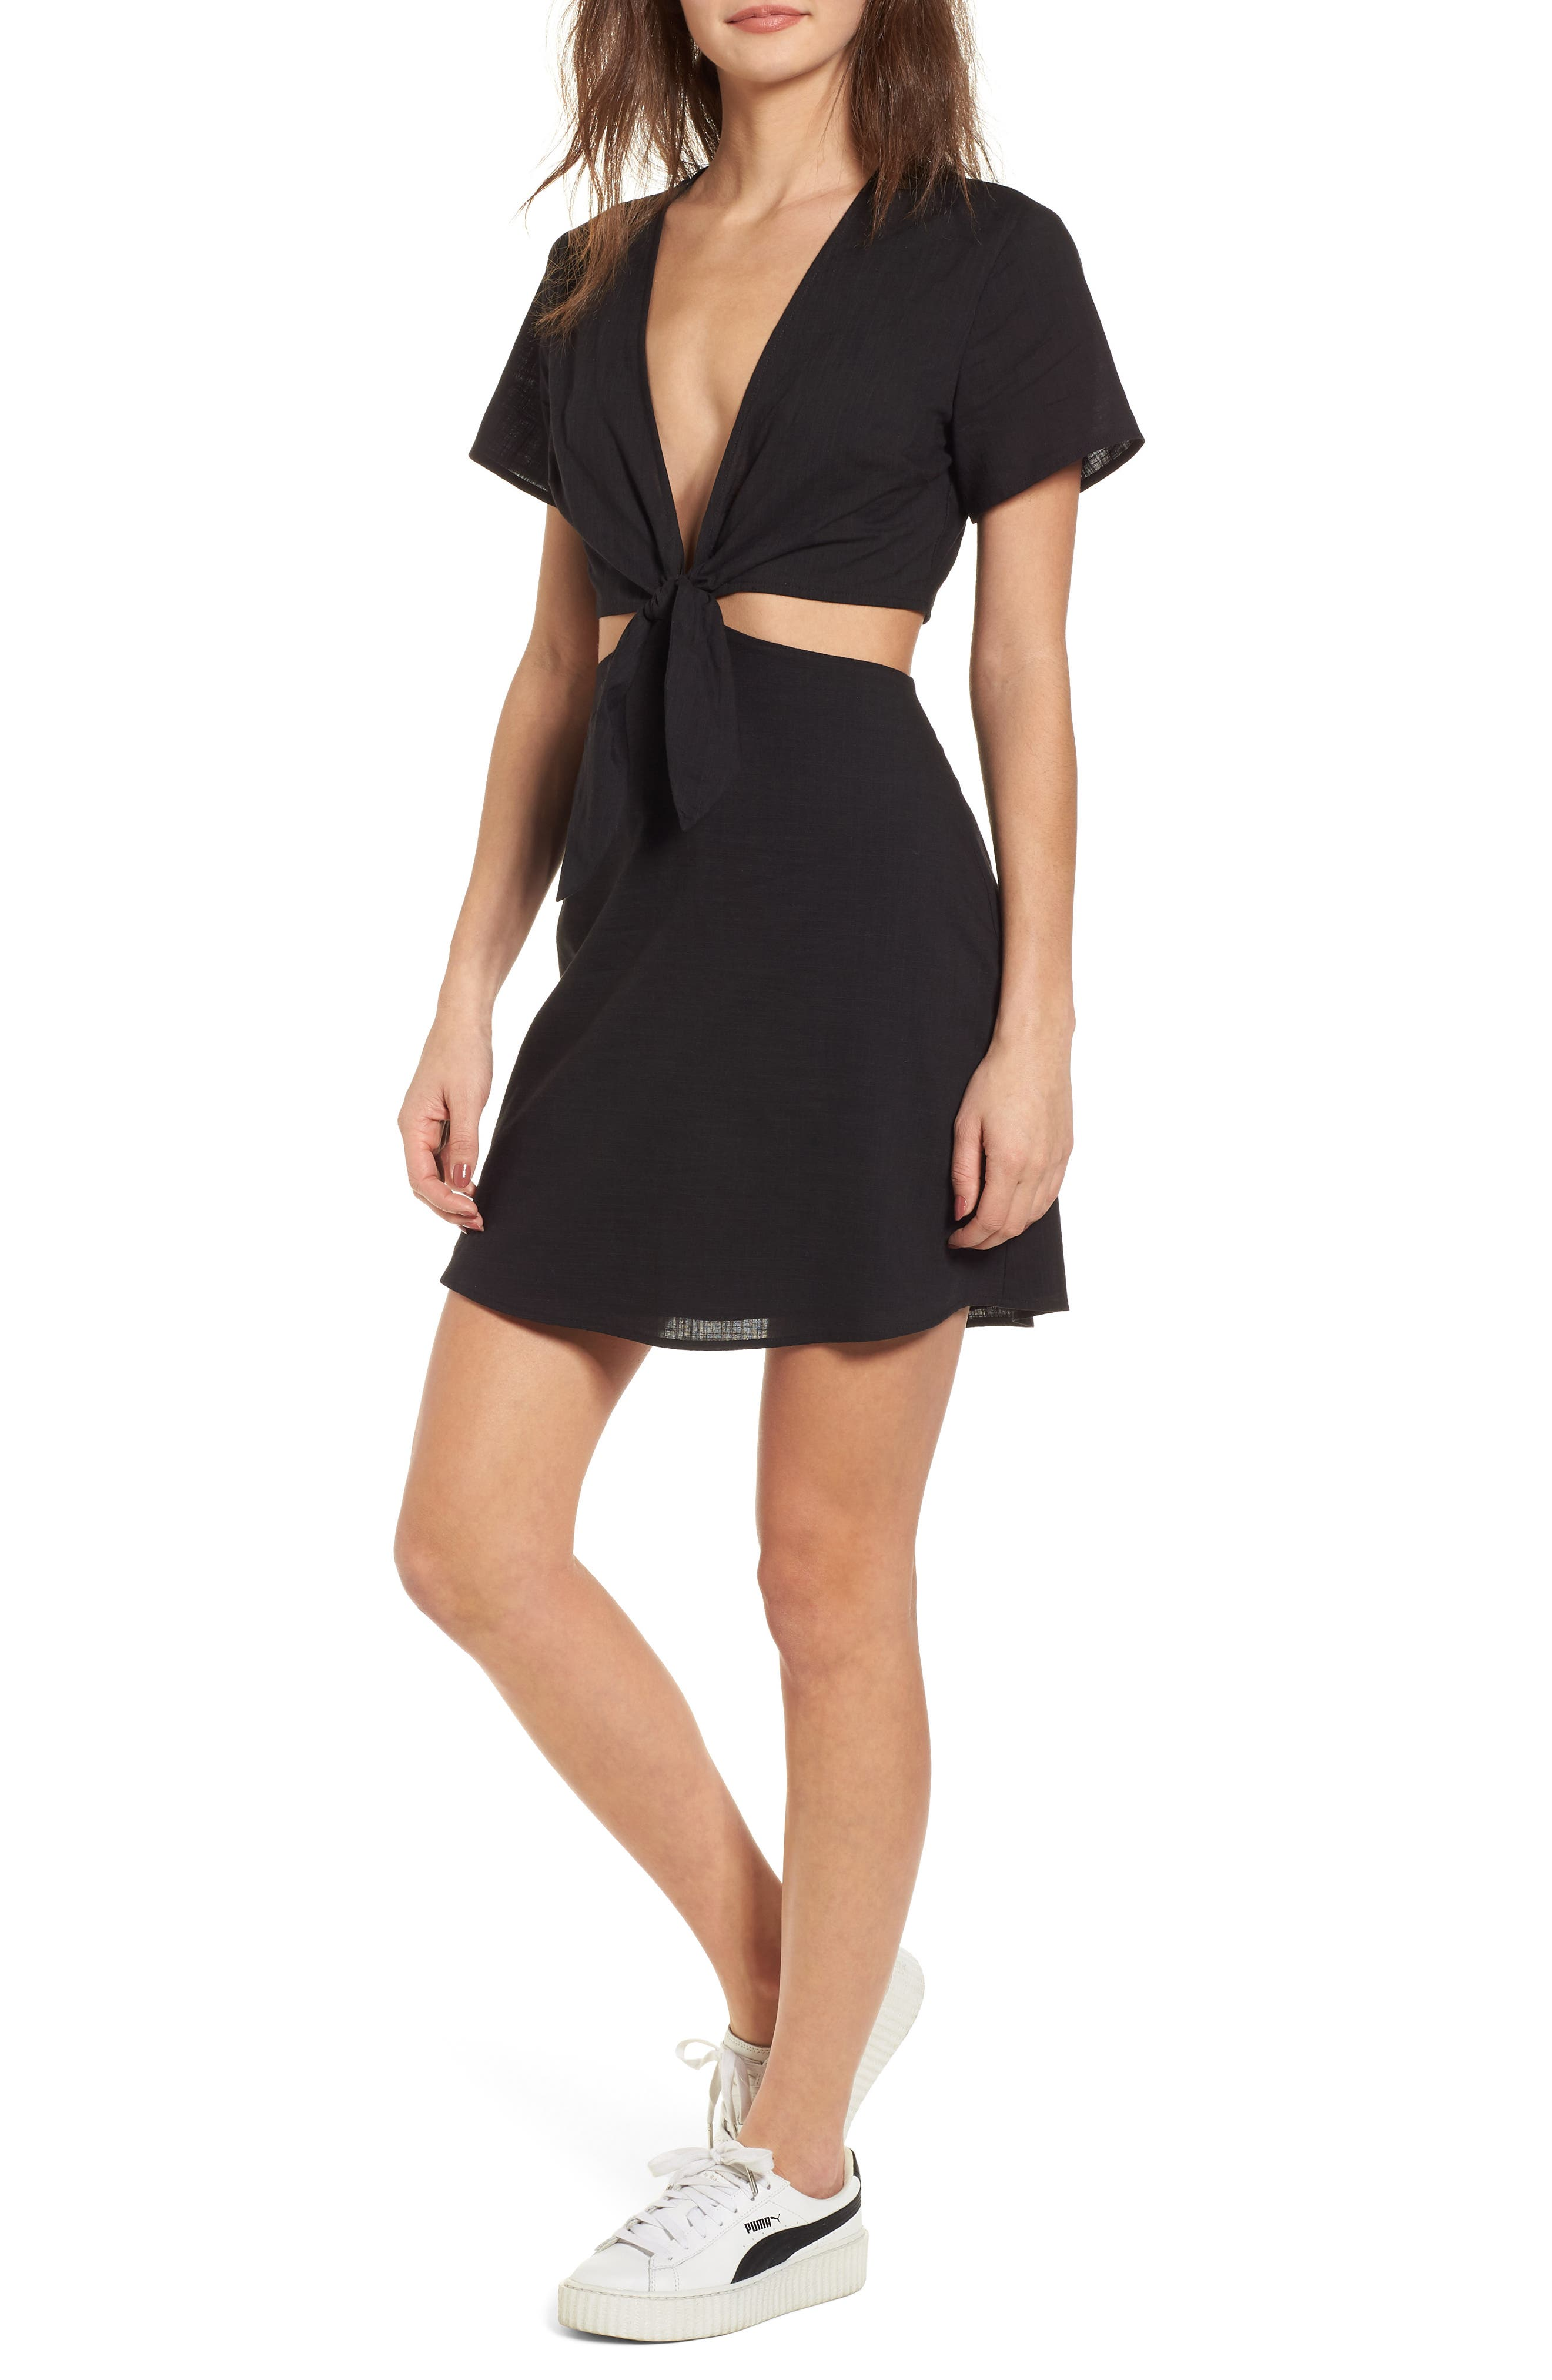 Emily Cutout Minidress,                             Main thumbnail 1, color,                             Black